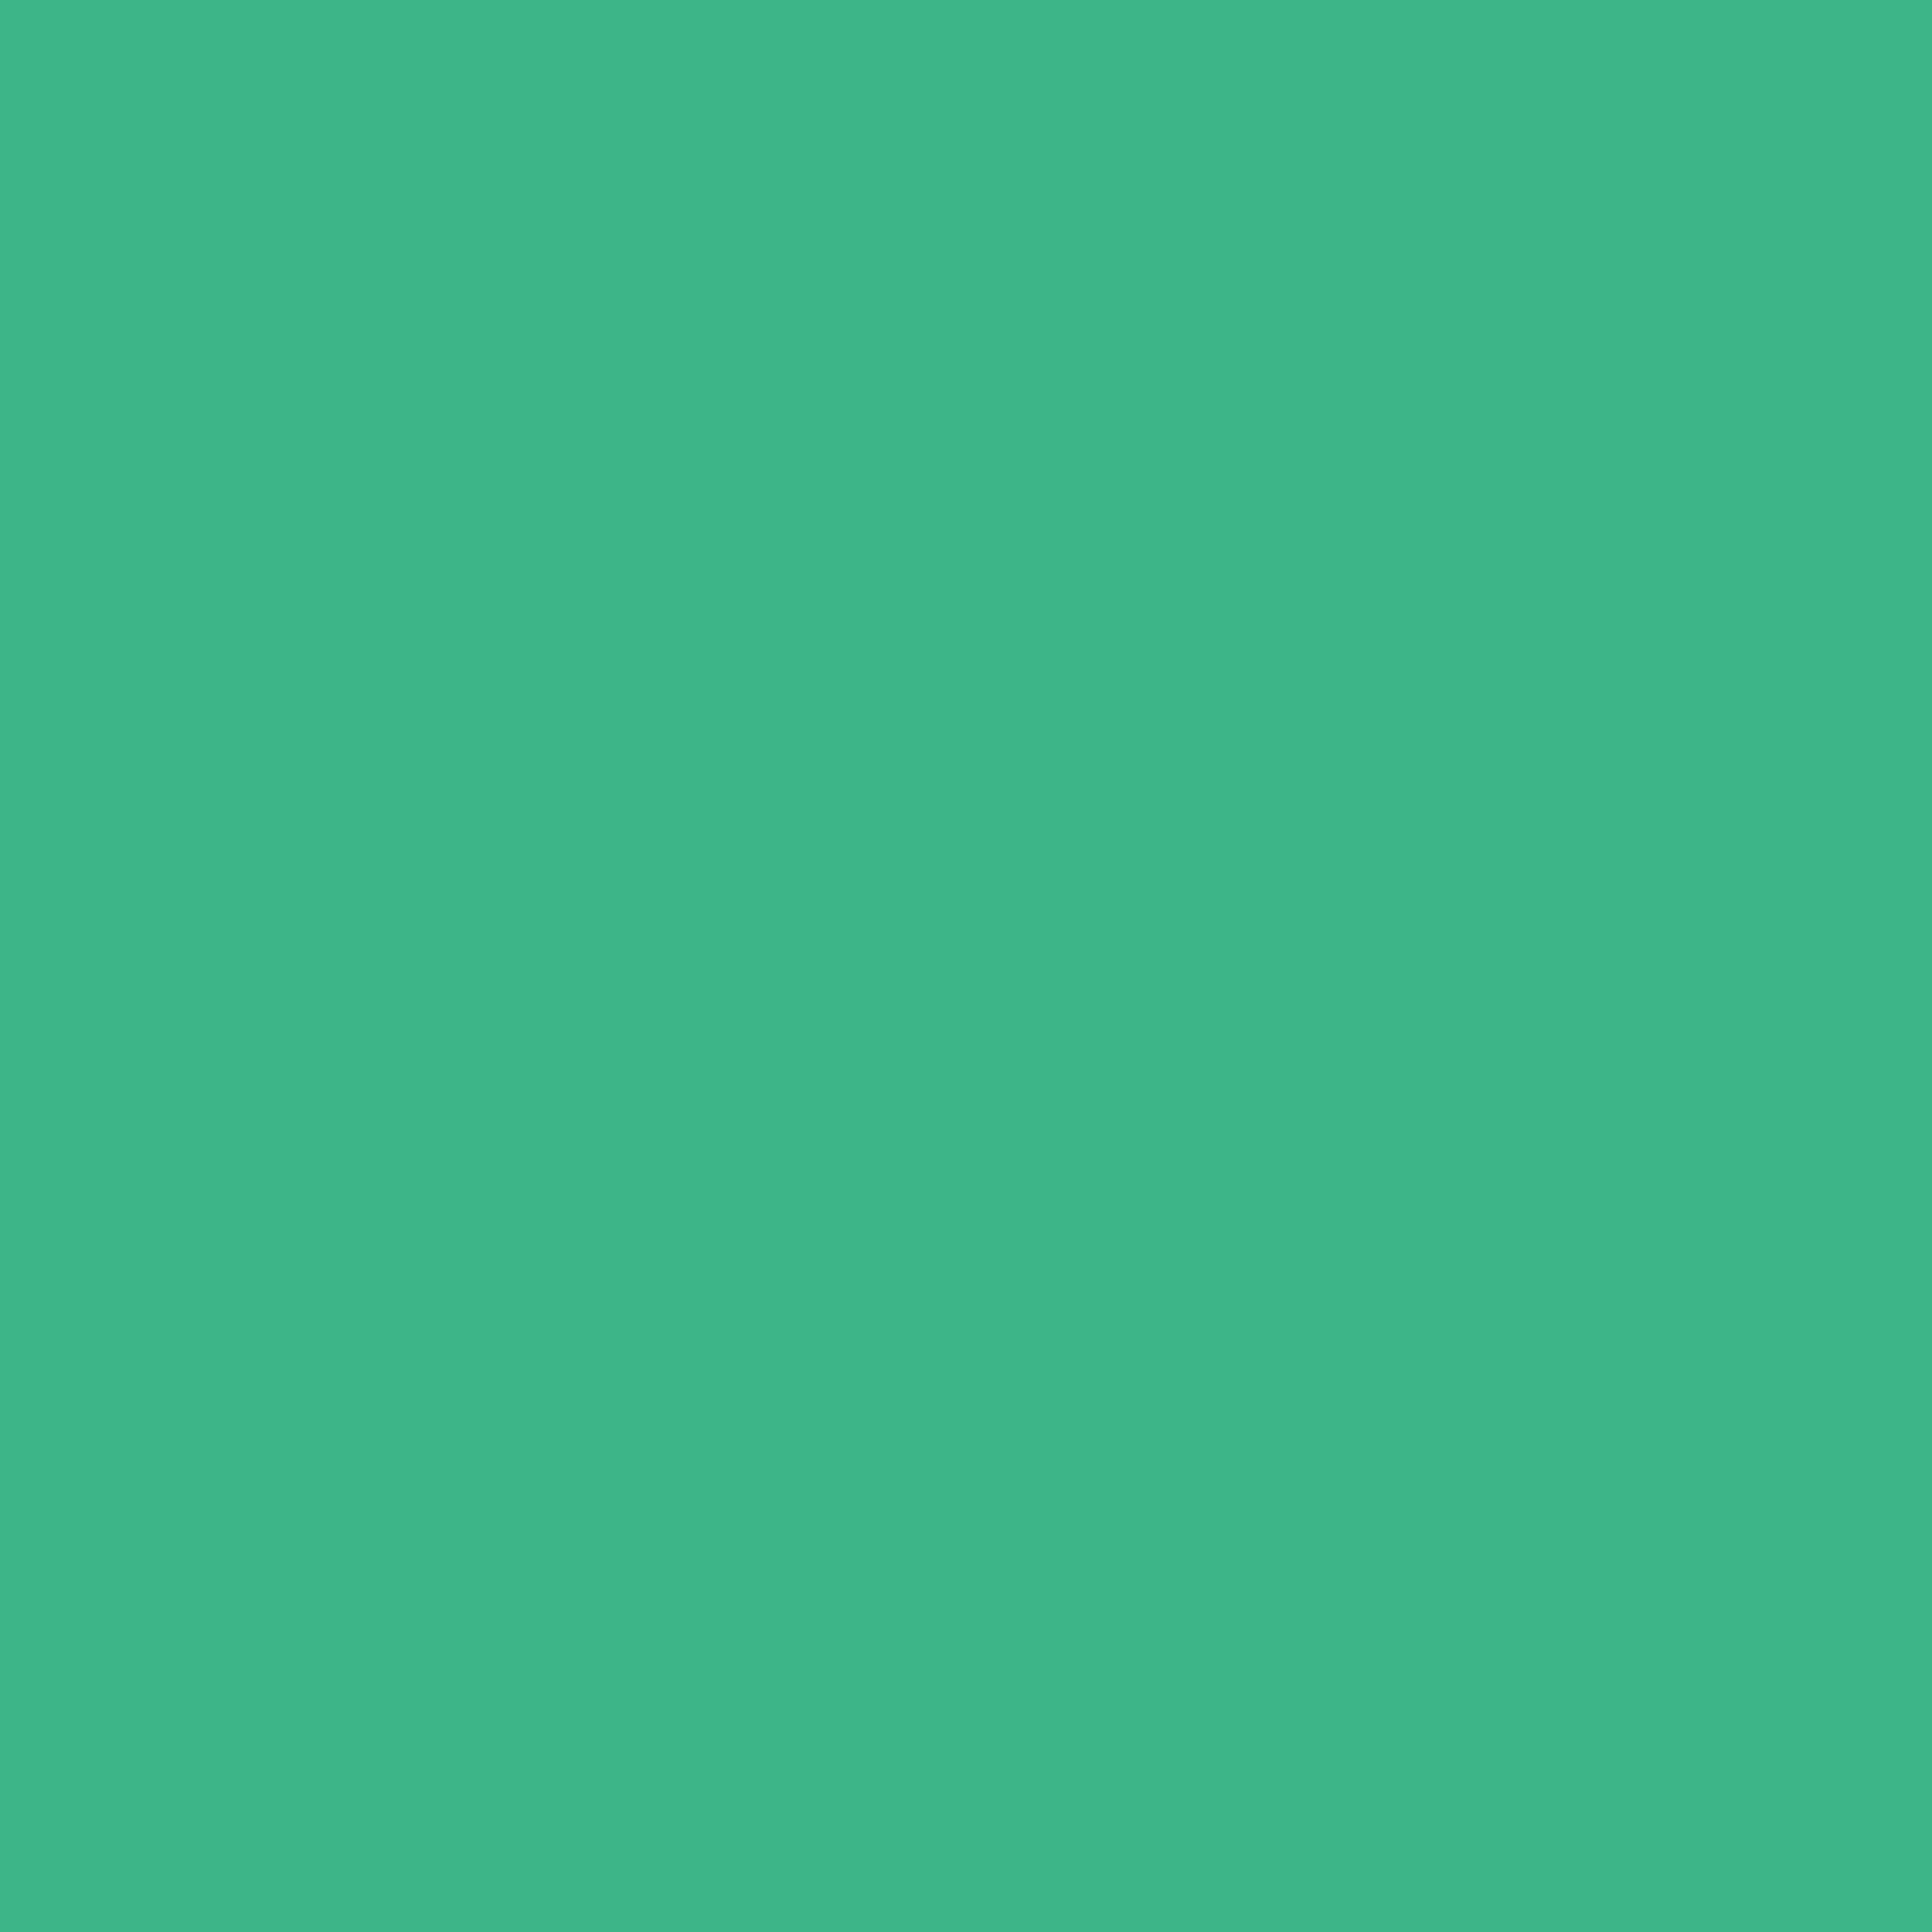 2732x2732 Mint Solid Color Background